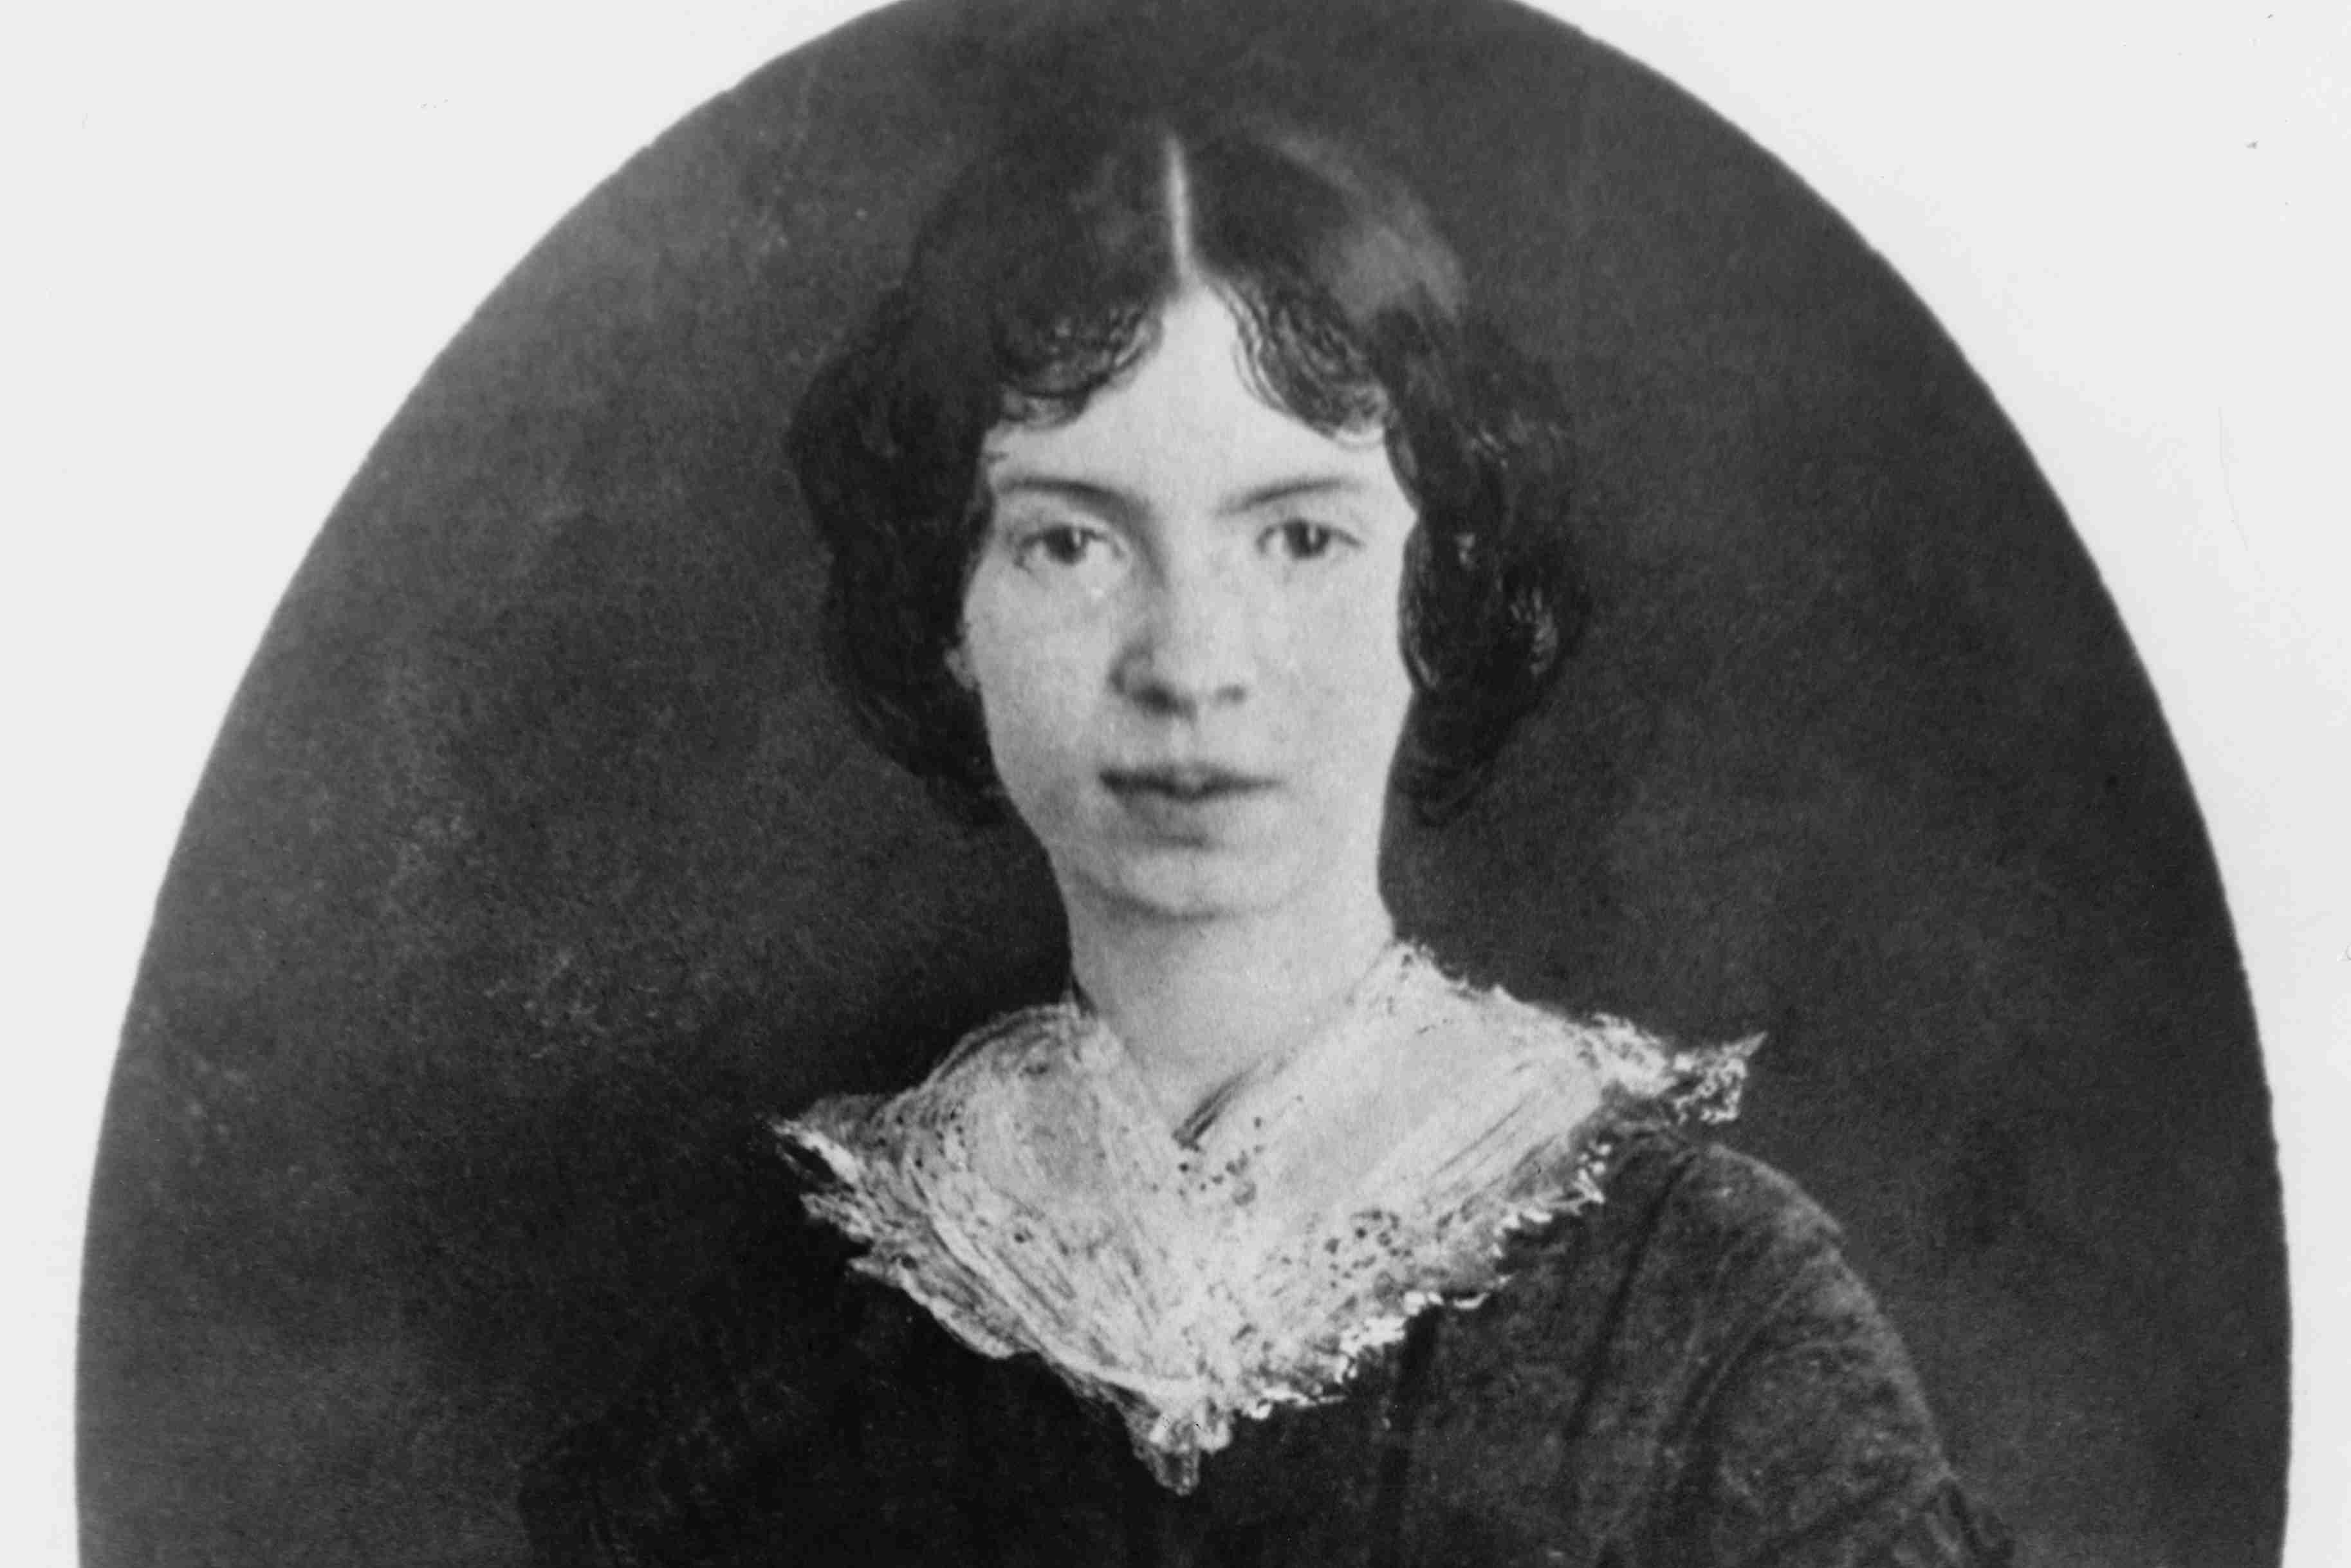 Emily Dickinson - about 1850